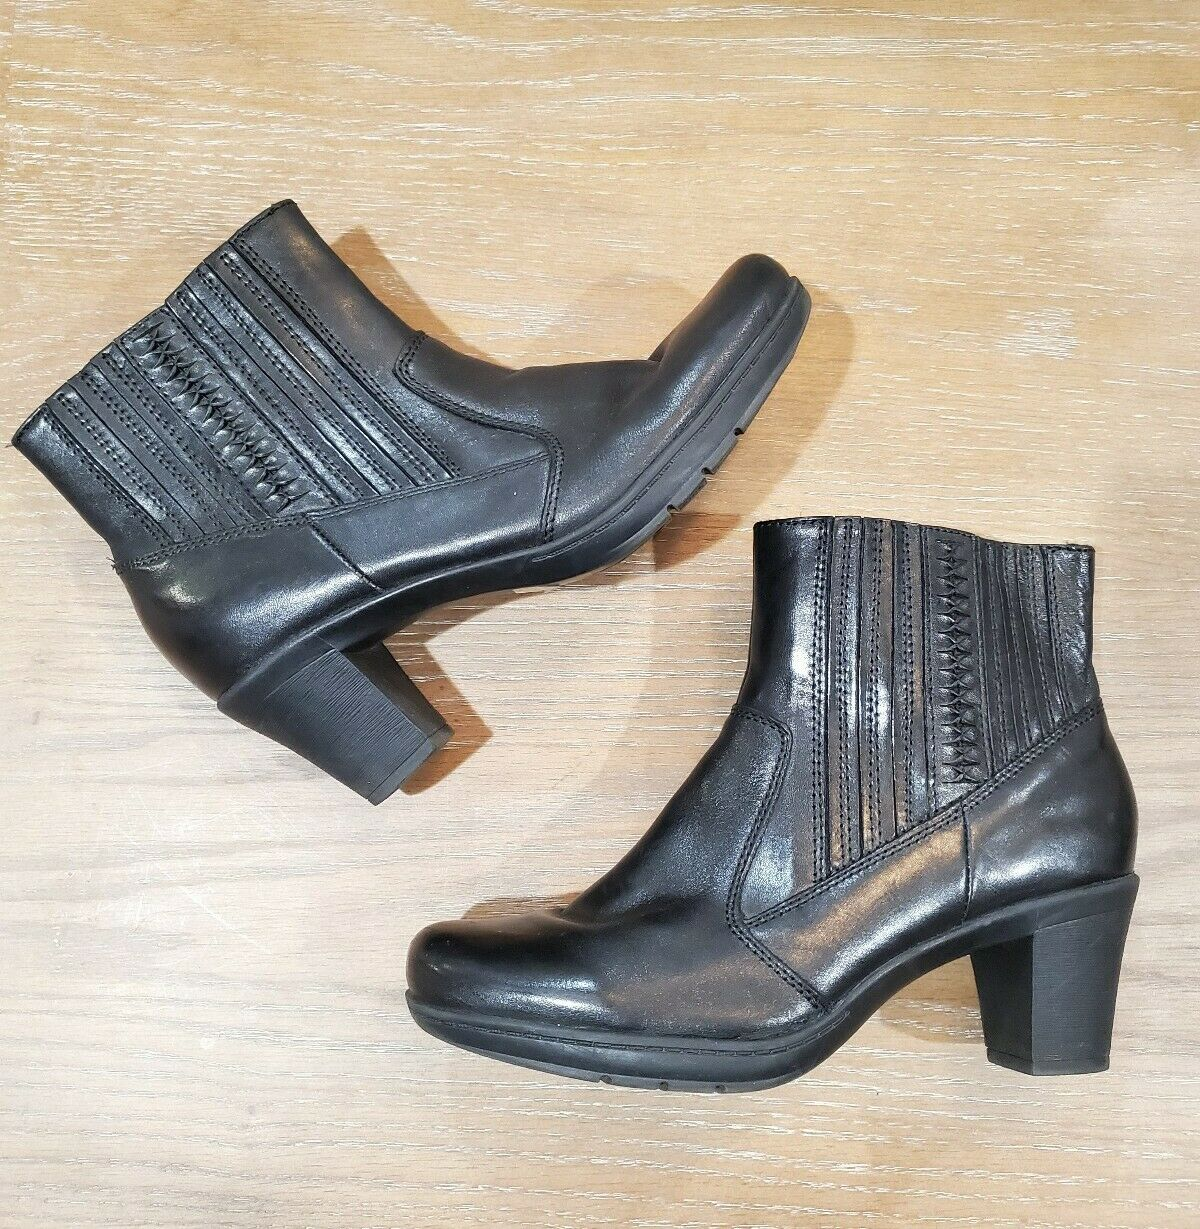 CLARK'S womens sz 8M Mirabelle film black leather cushioned heeled ankle booties